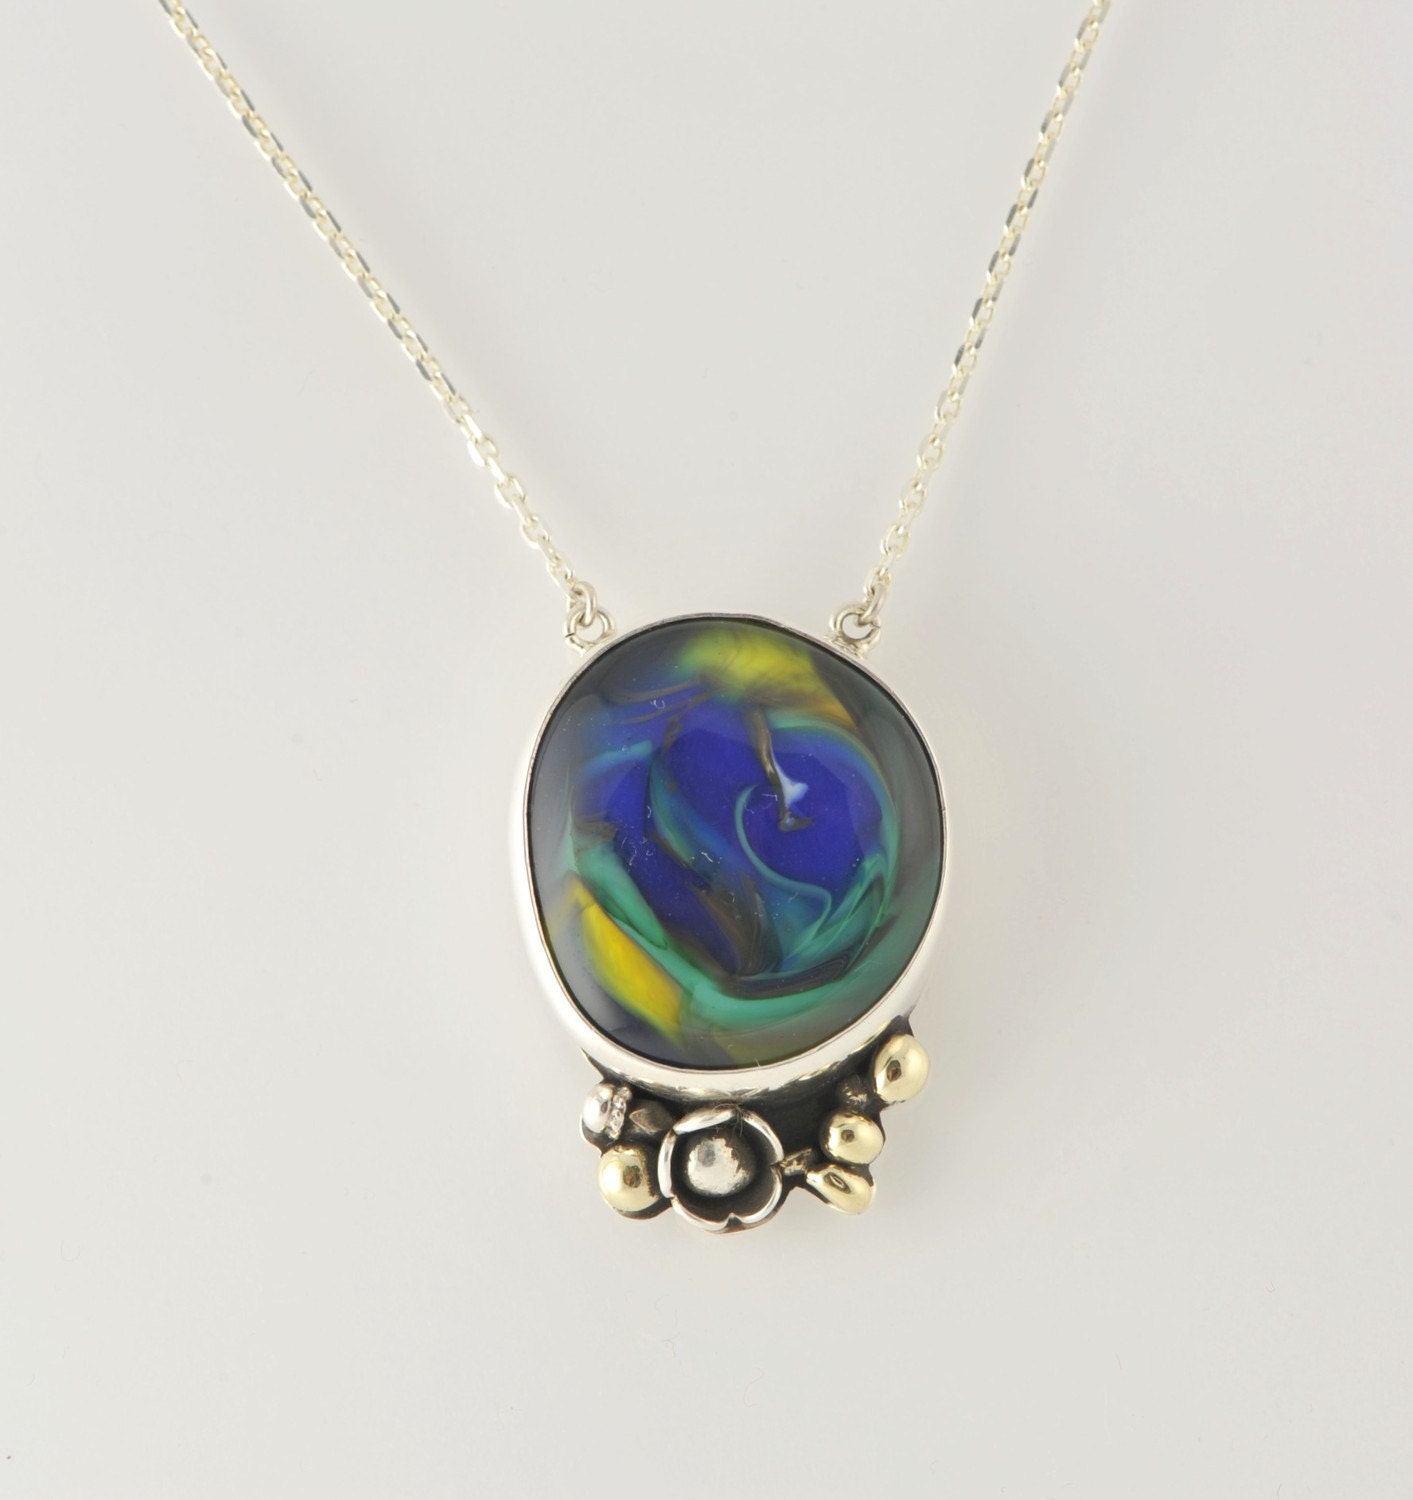 Cobalt Blue Yellow Green colors of Lampwork Glass Silver Necklace with Chain